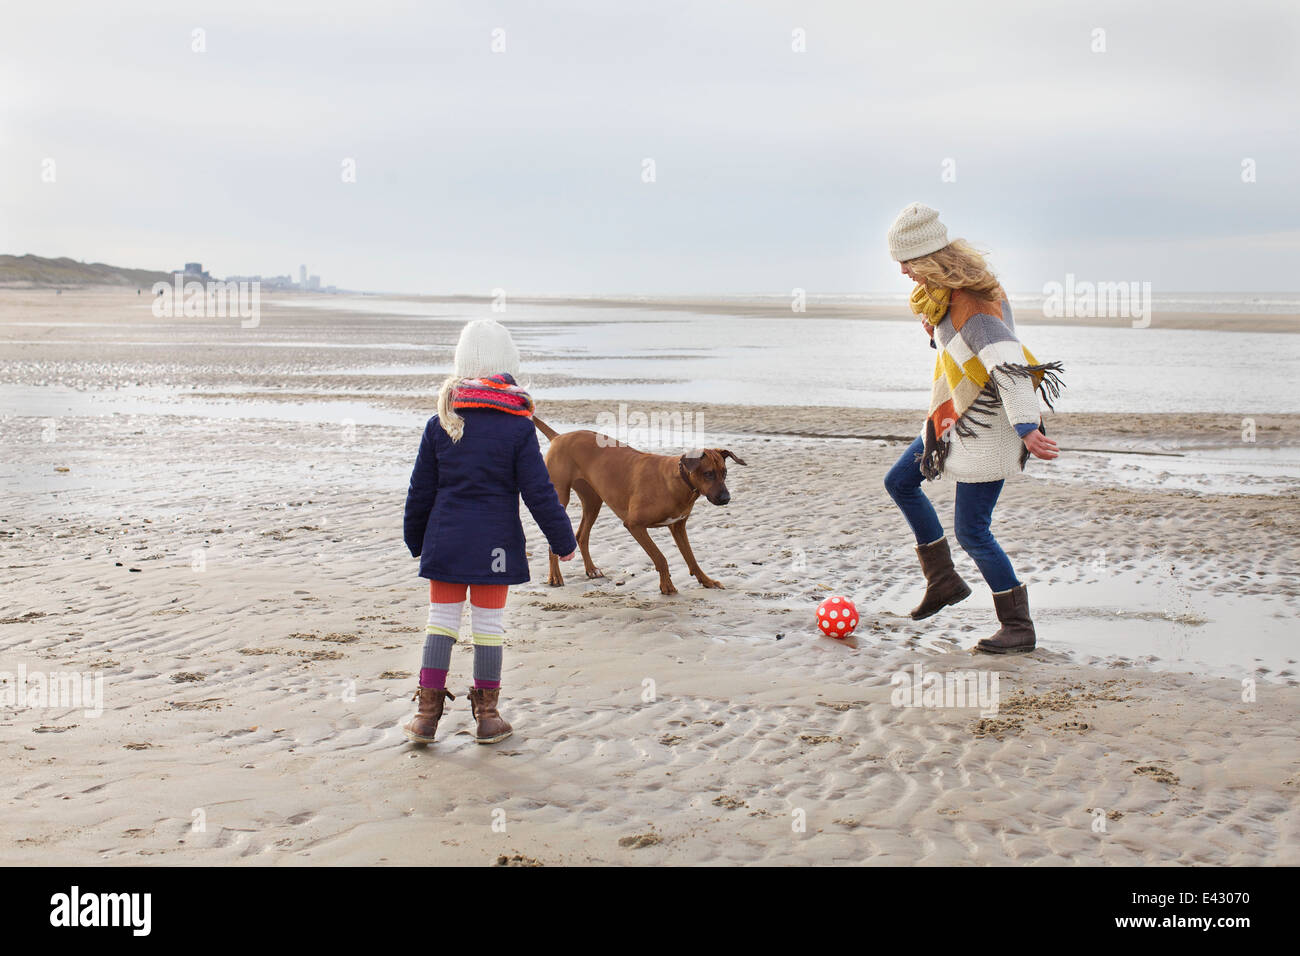 Mid adult woman with daughter and dog playing football on beach, Bloemendaal aan Zee, Netherlands - Stock Image